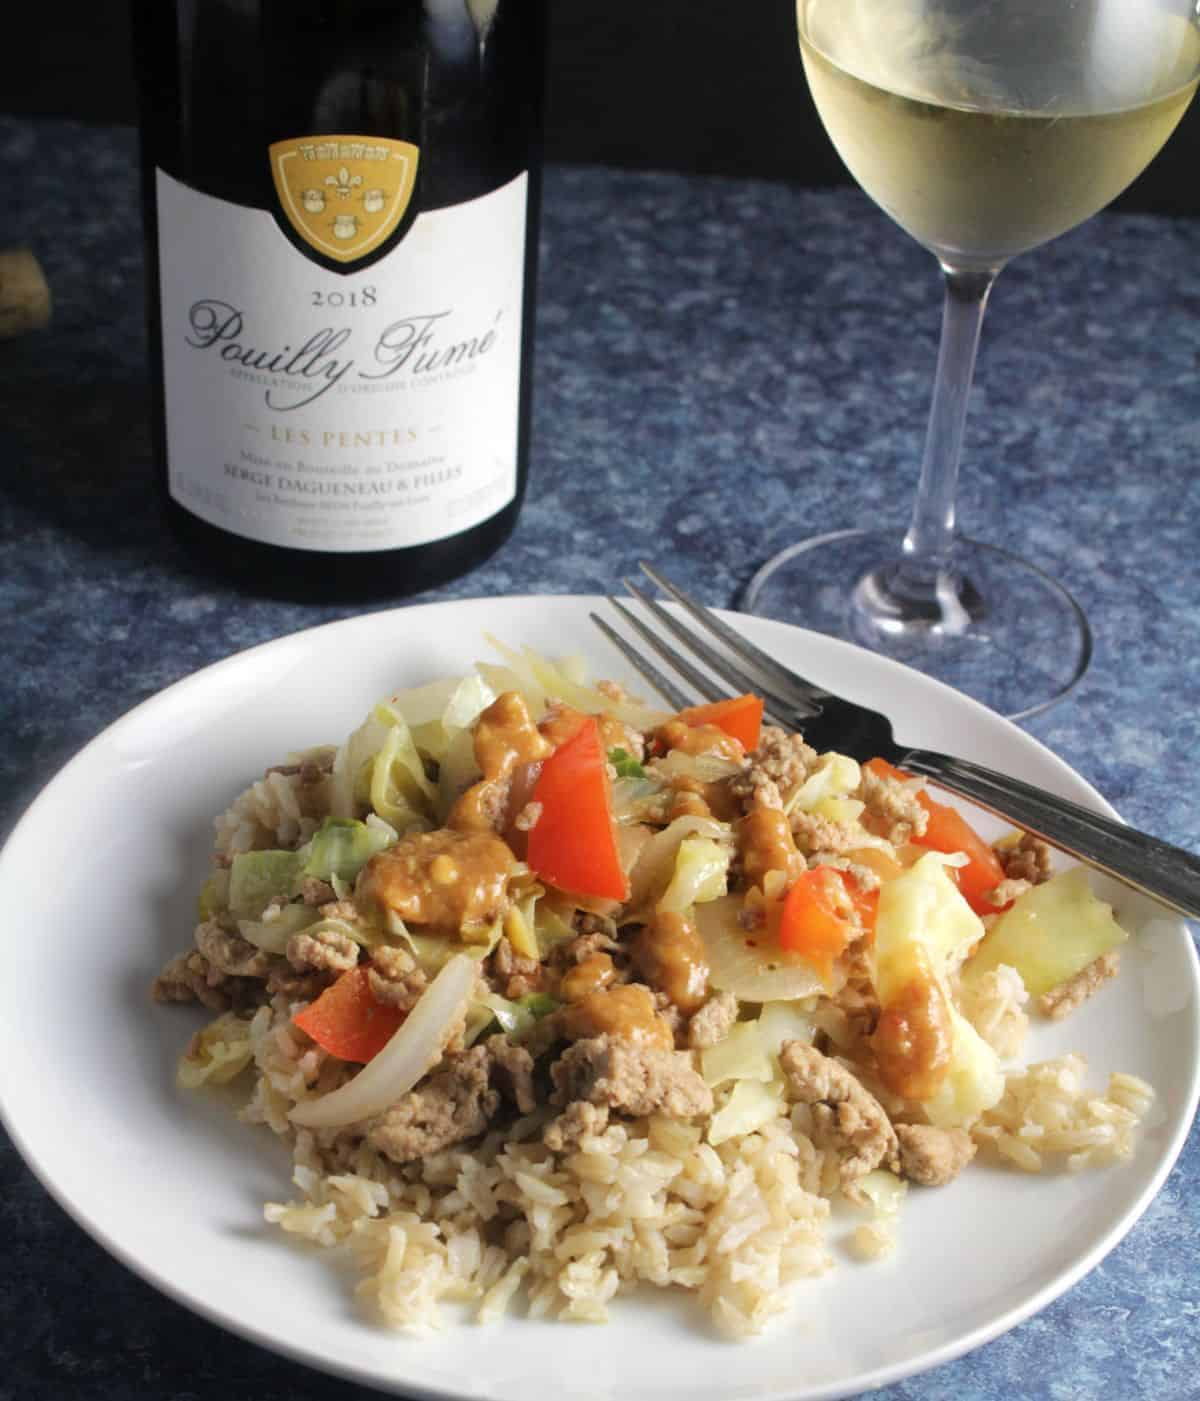 turkey cabbage stir-fry plated and served with white wine.